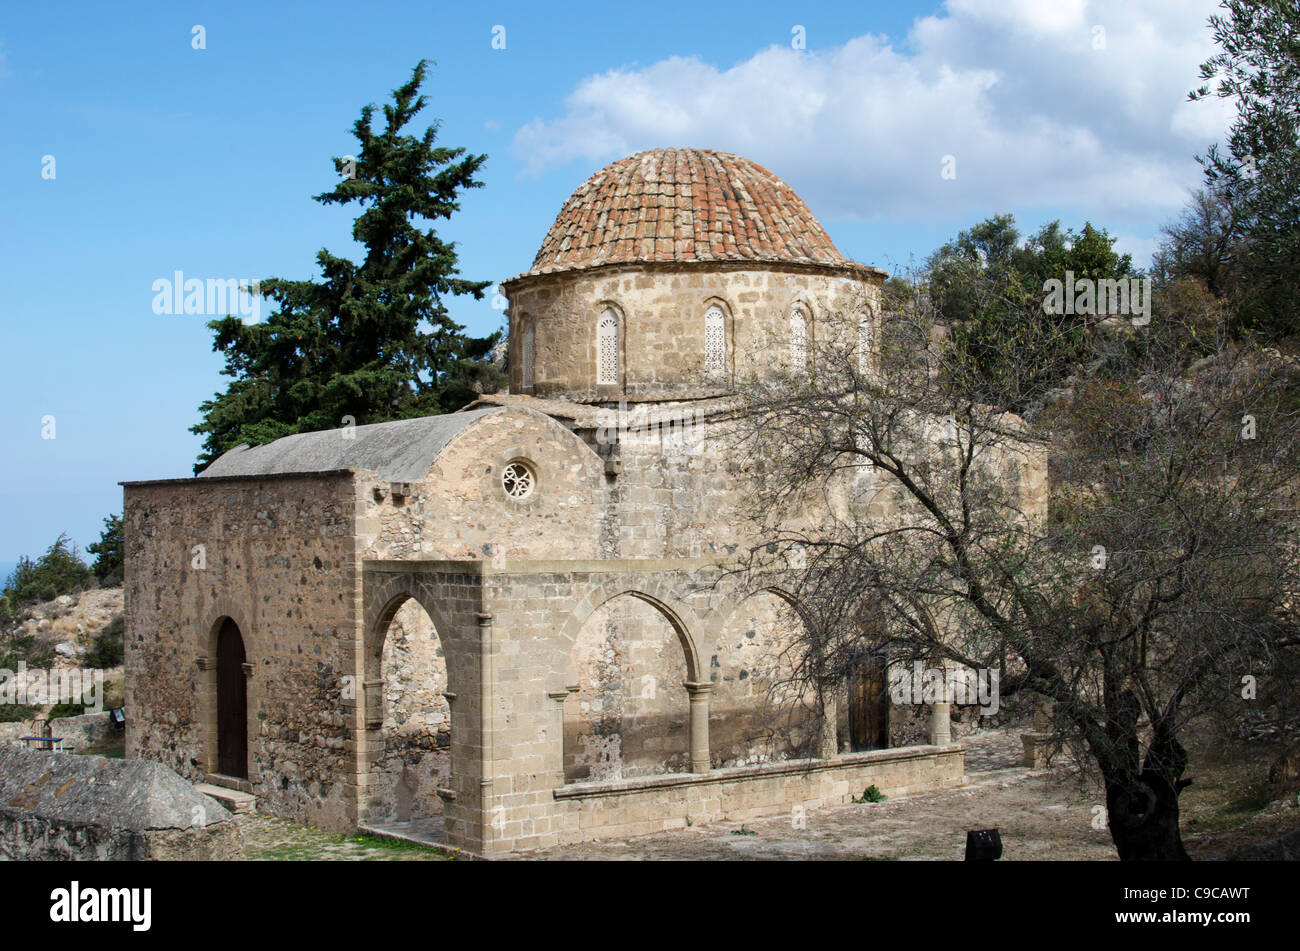 The Greek Orthodox monastic church of Antiphonitis in North Cyprus - Stock Image